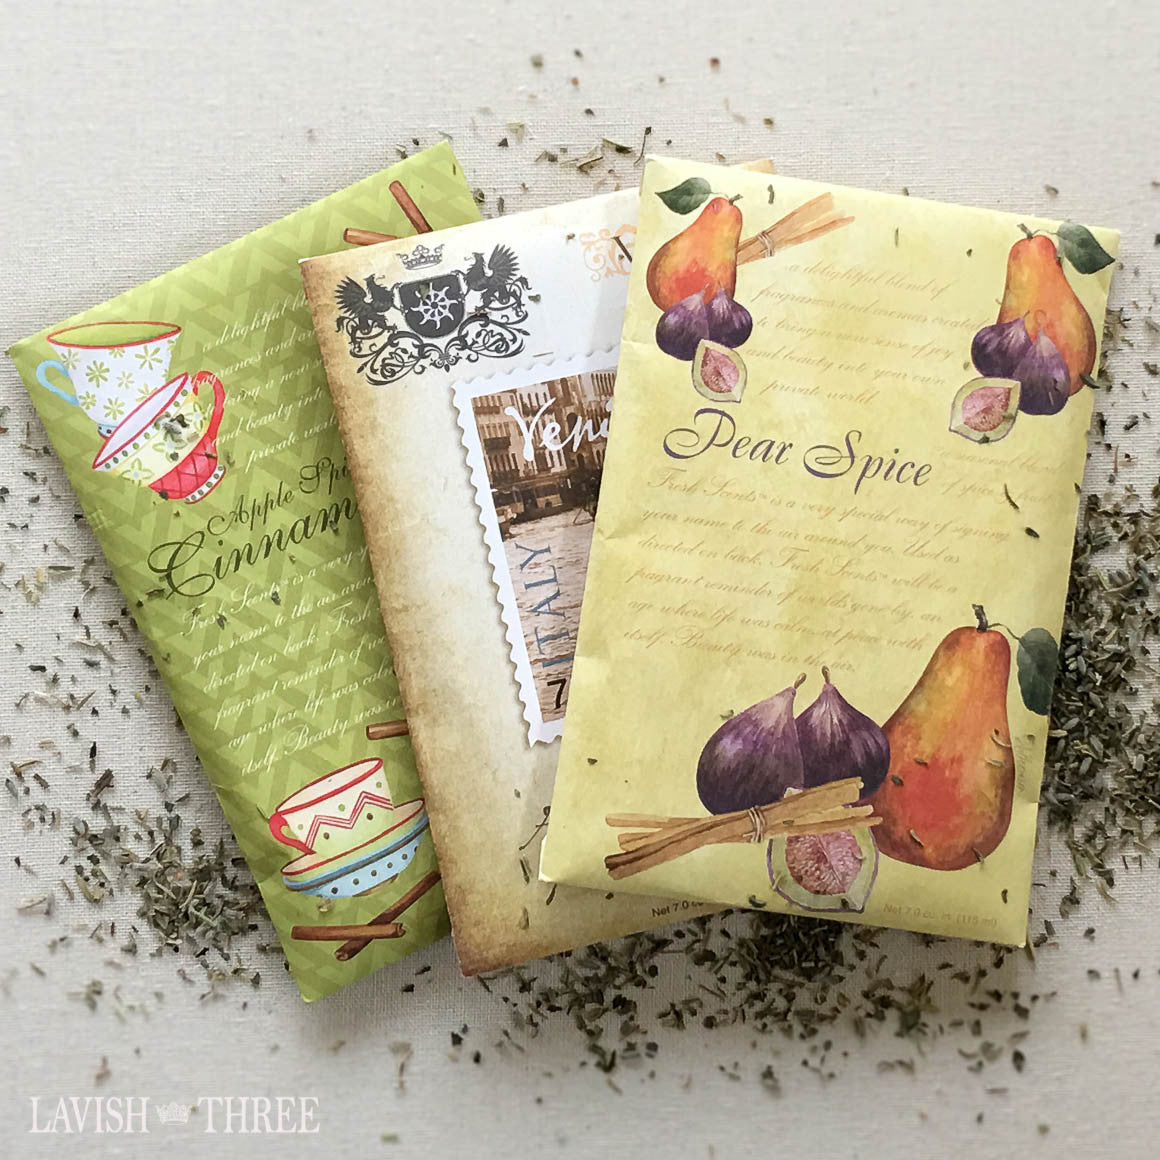 Sachets Apple spice, Venice, Pear Spice Lavish Three